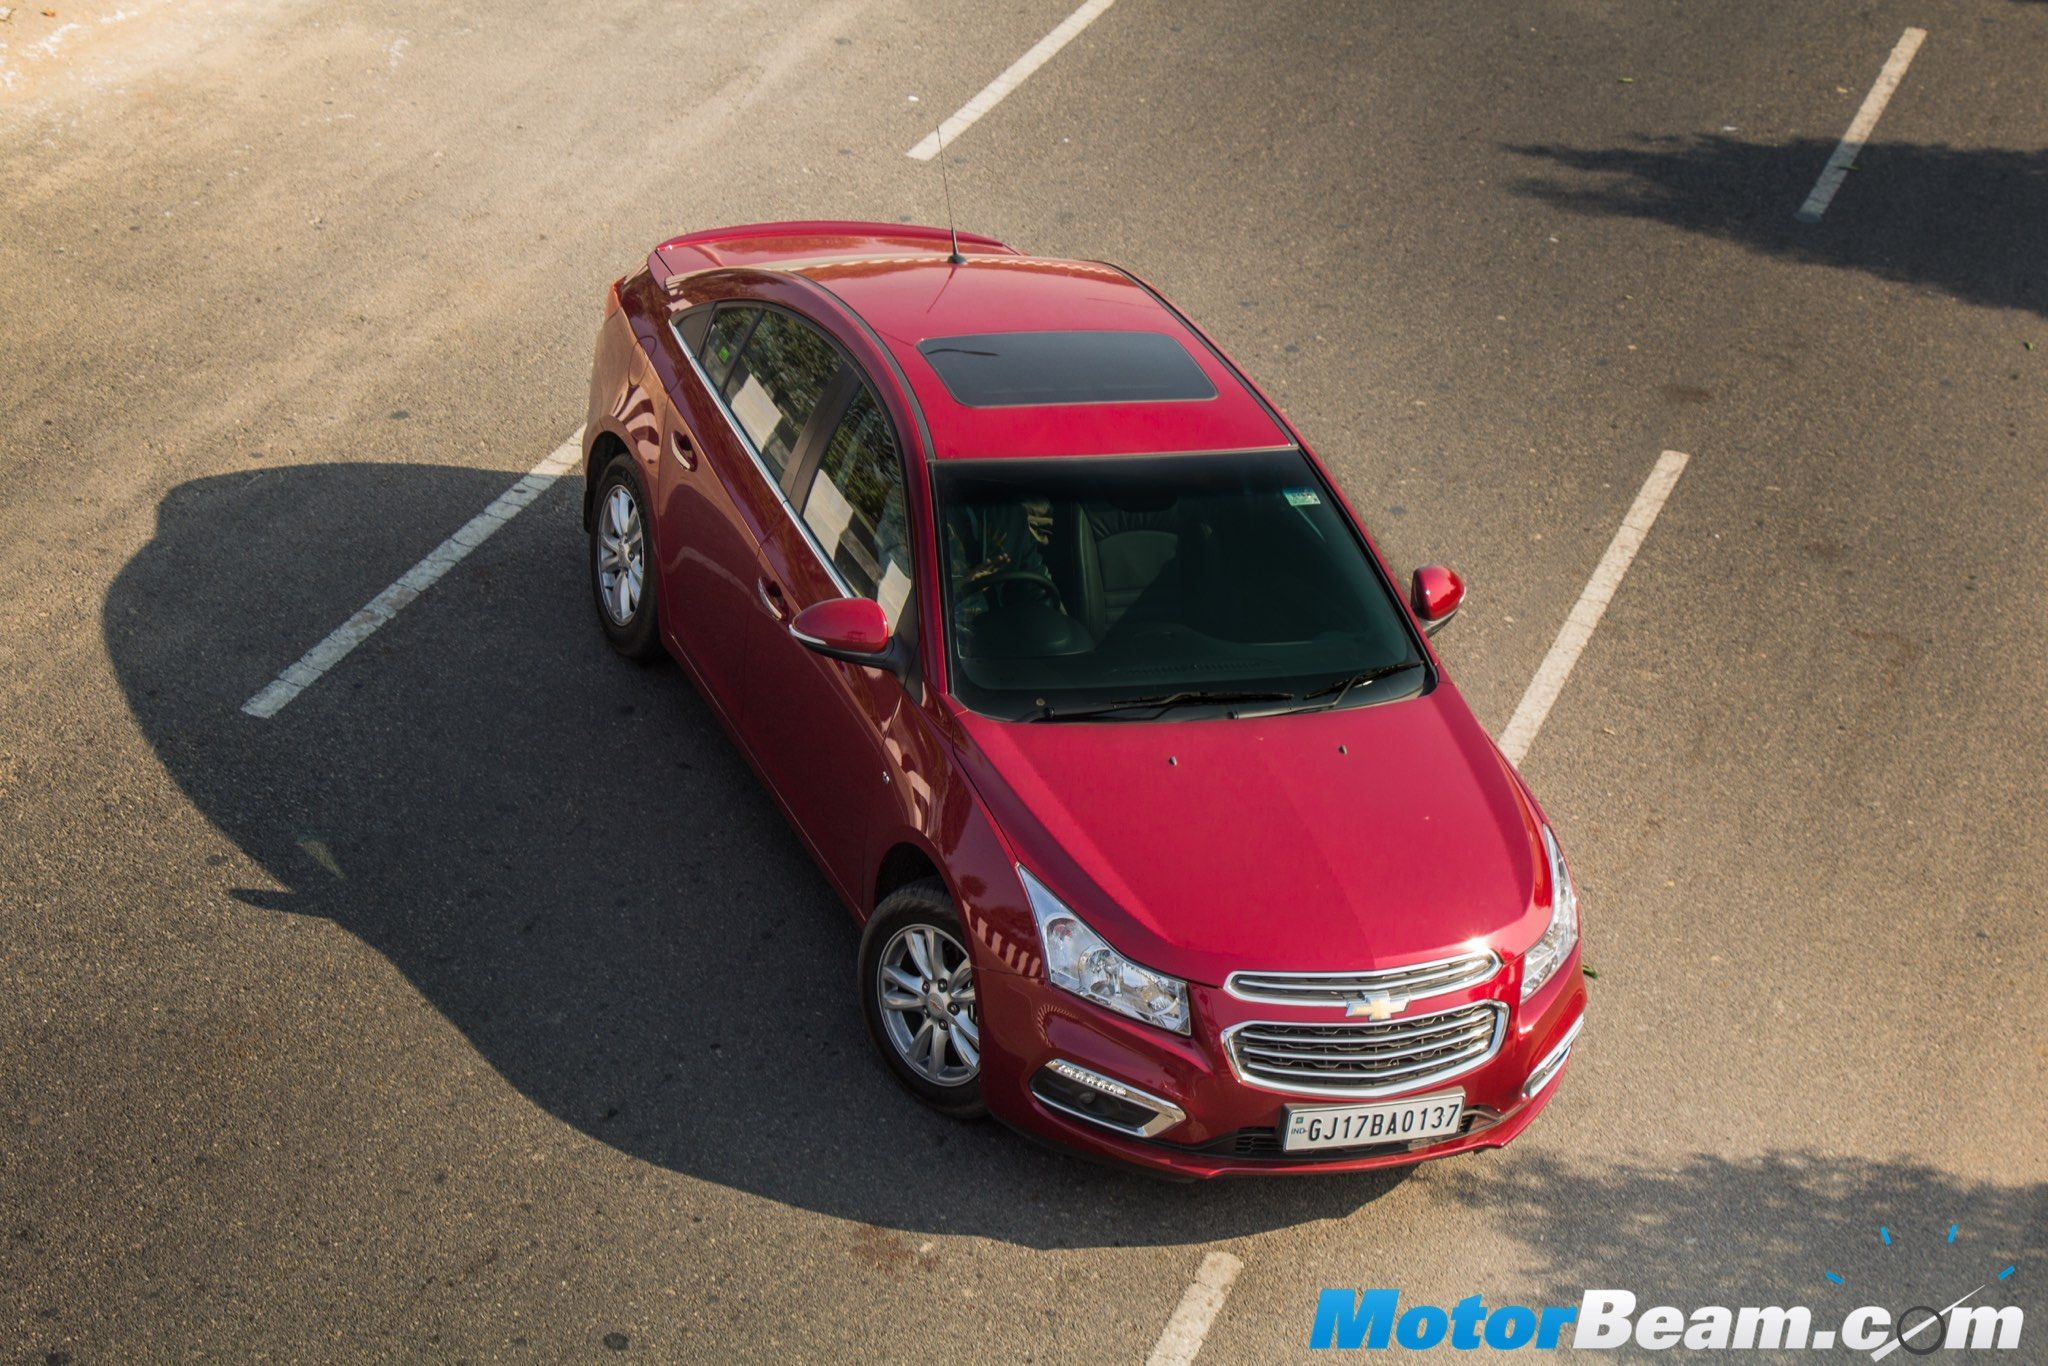 Gm India Operations To Shut Chevrolet Cars To Be Discontinued Chevrolet Cruze Chevrolet Bike News